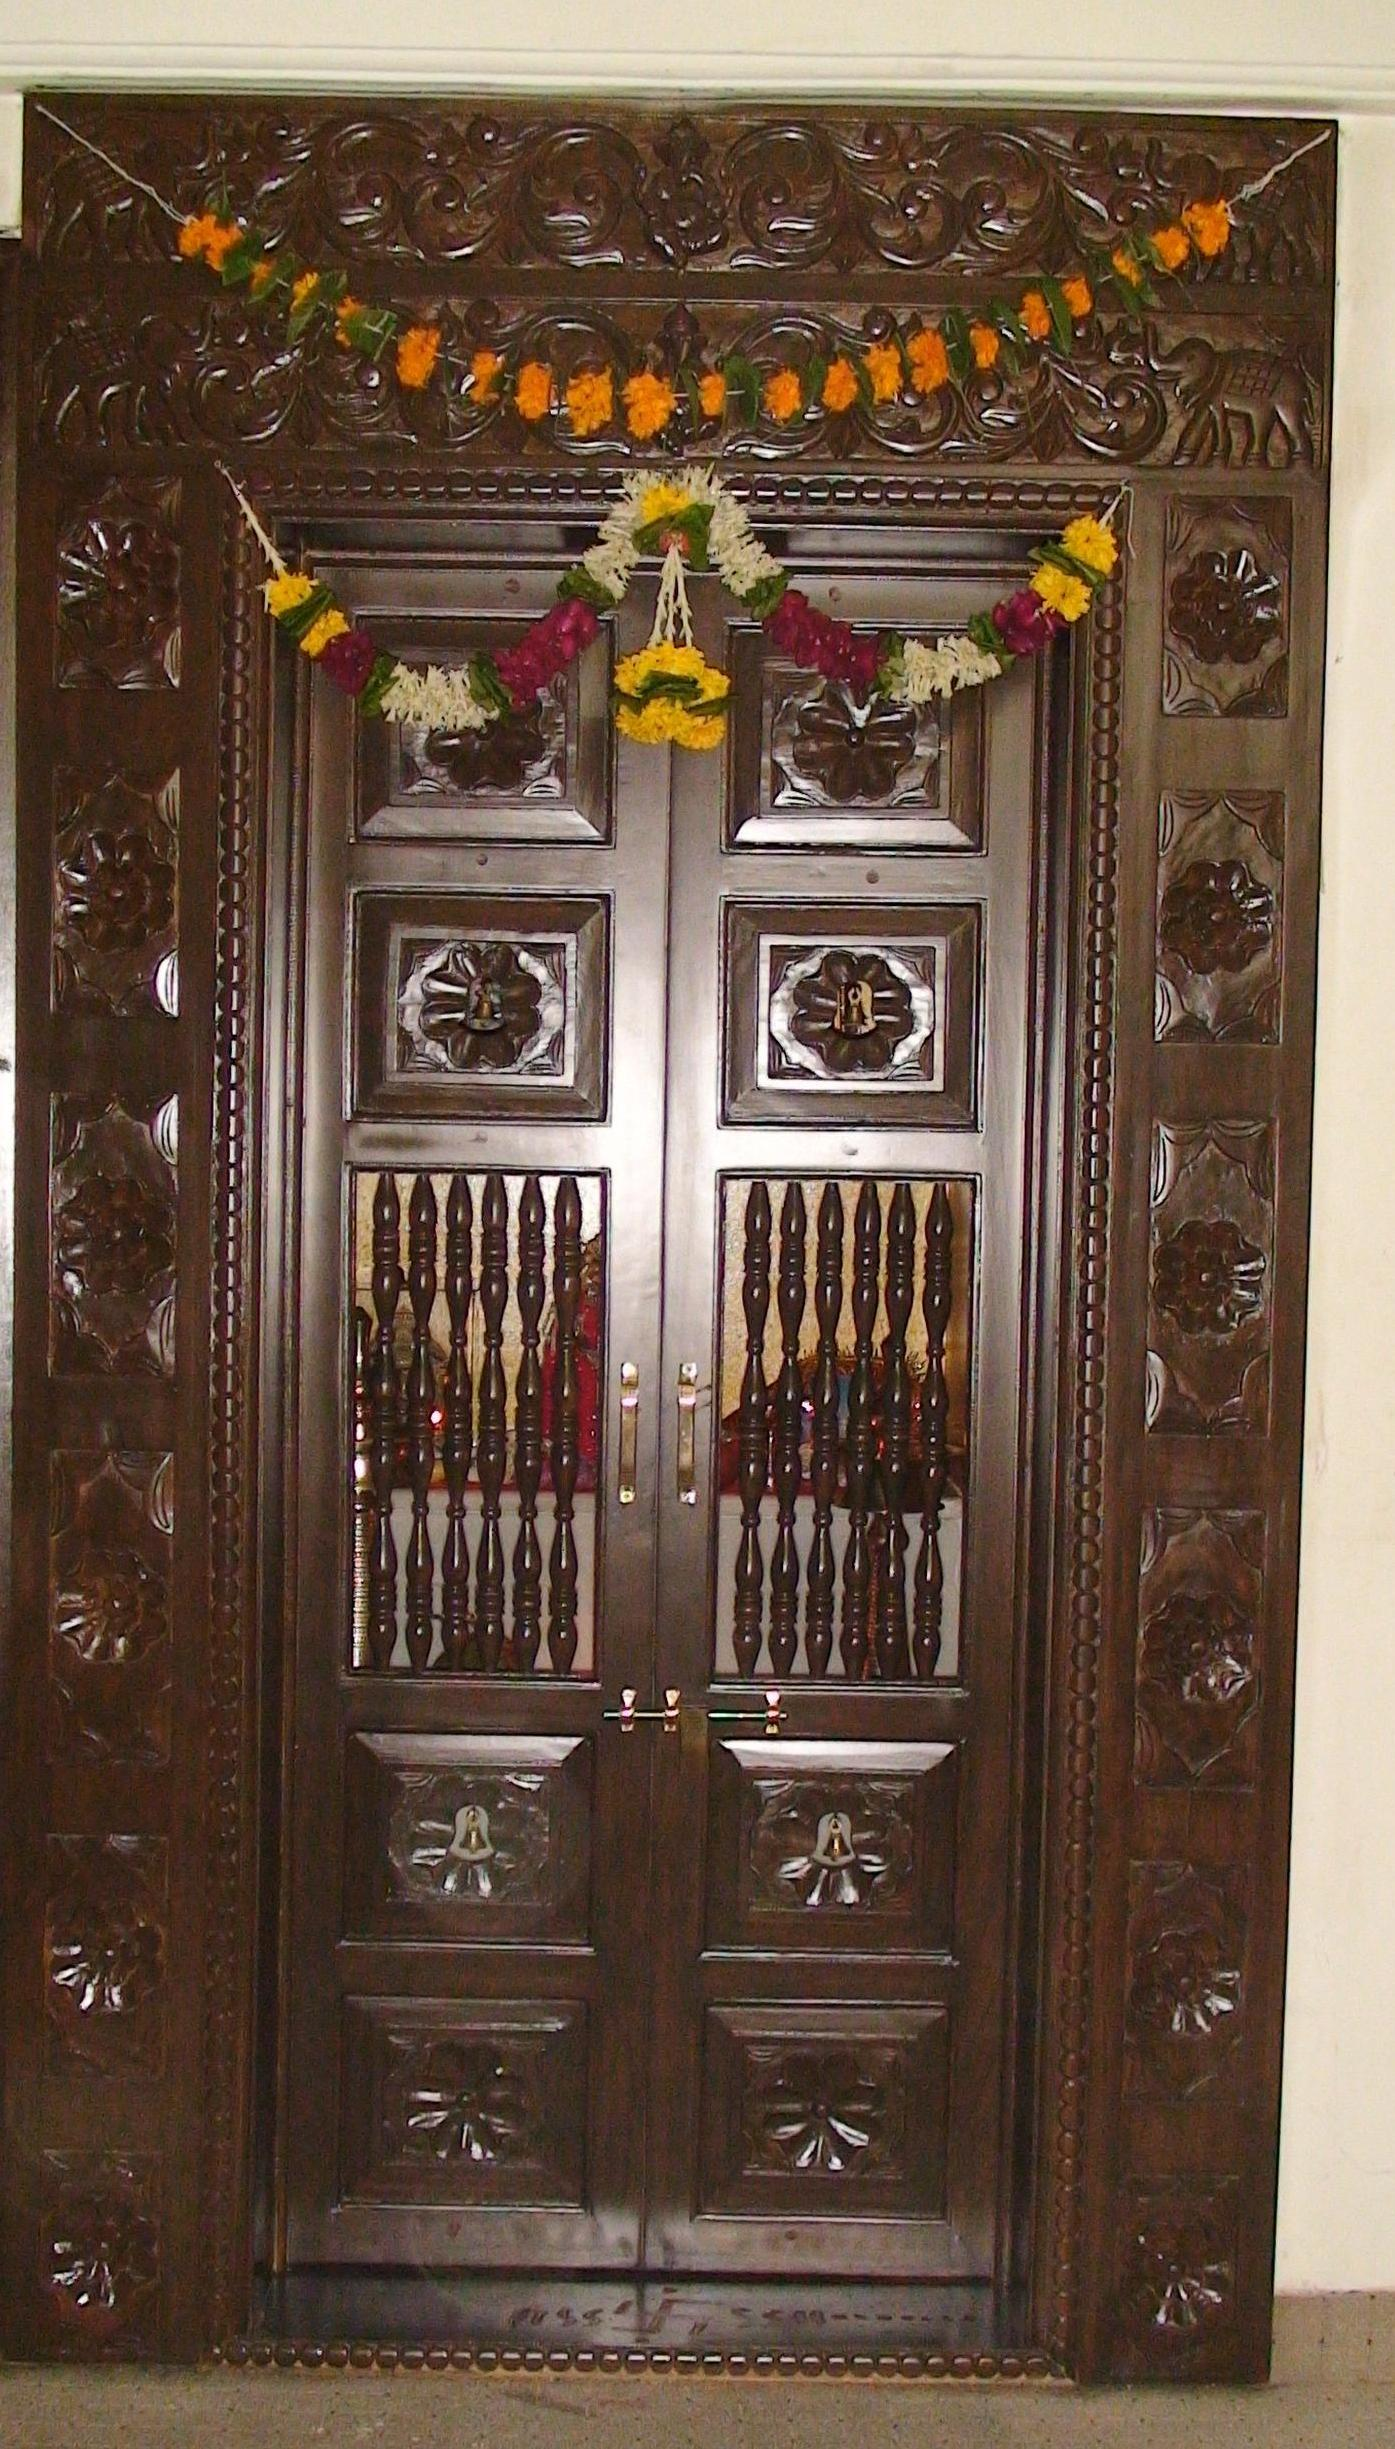 9 Traditional Pooja Room Door Designs In 2020: Wooden Pooja Mandir Designs